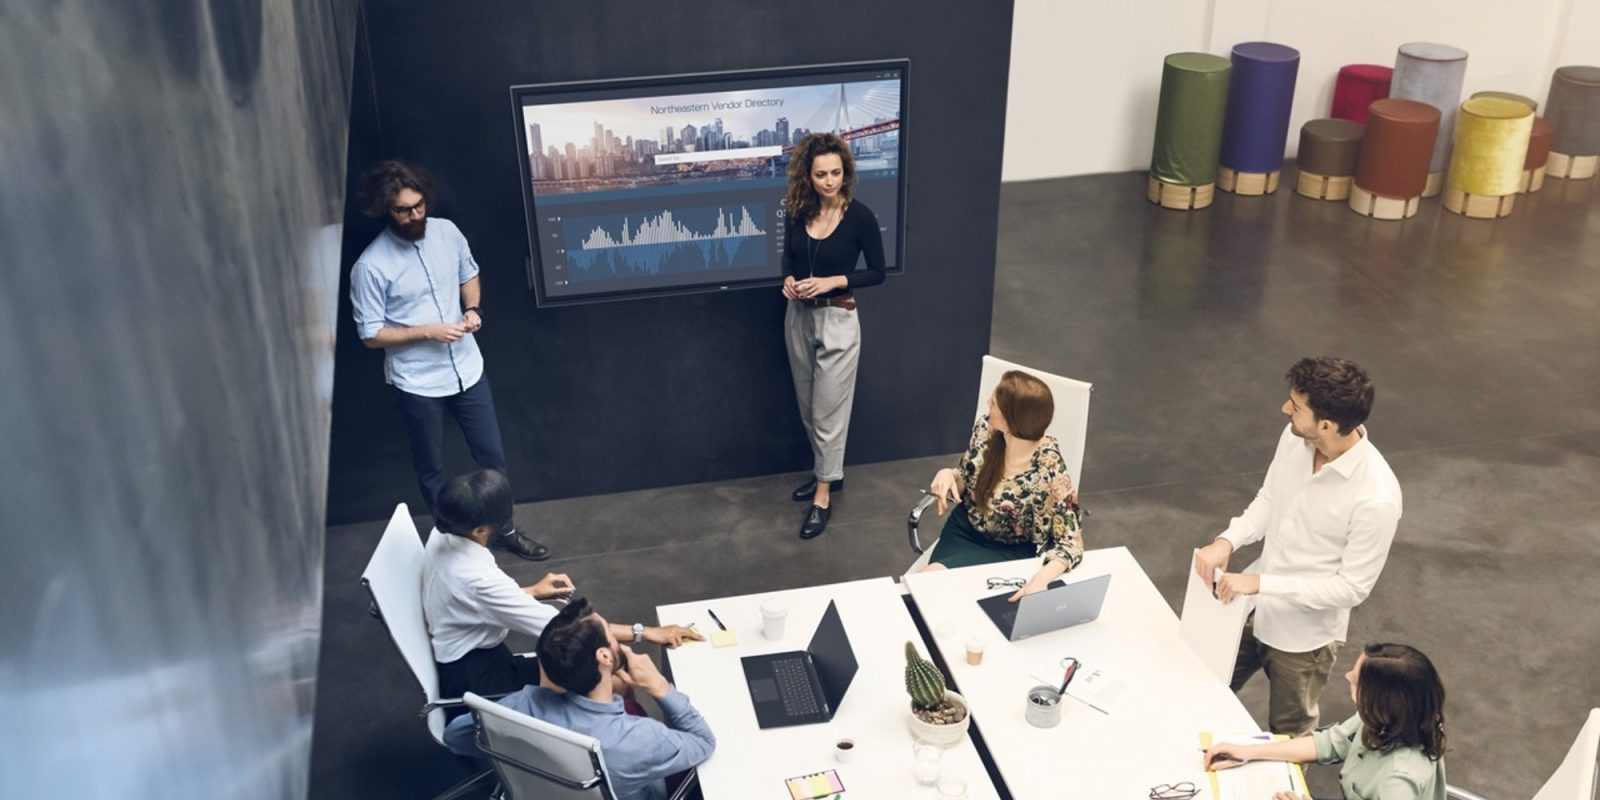 Digital Trends - Dell's InGlass is a Surface Hub Competitor